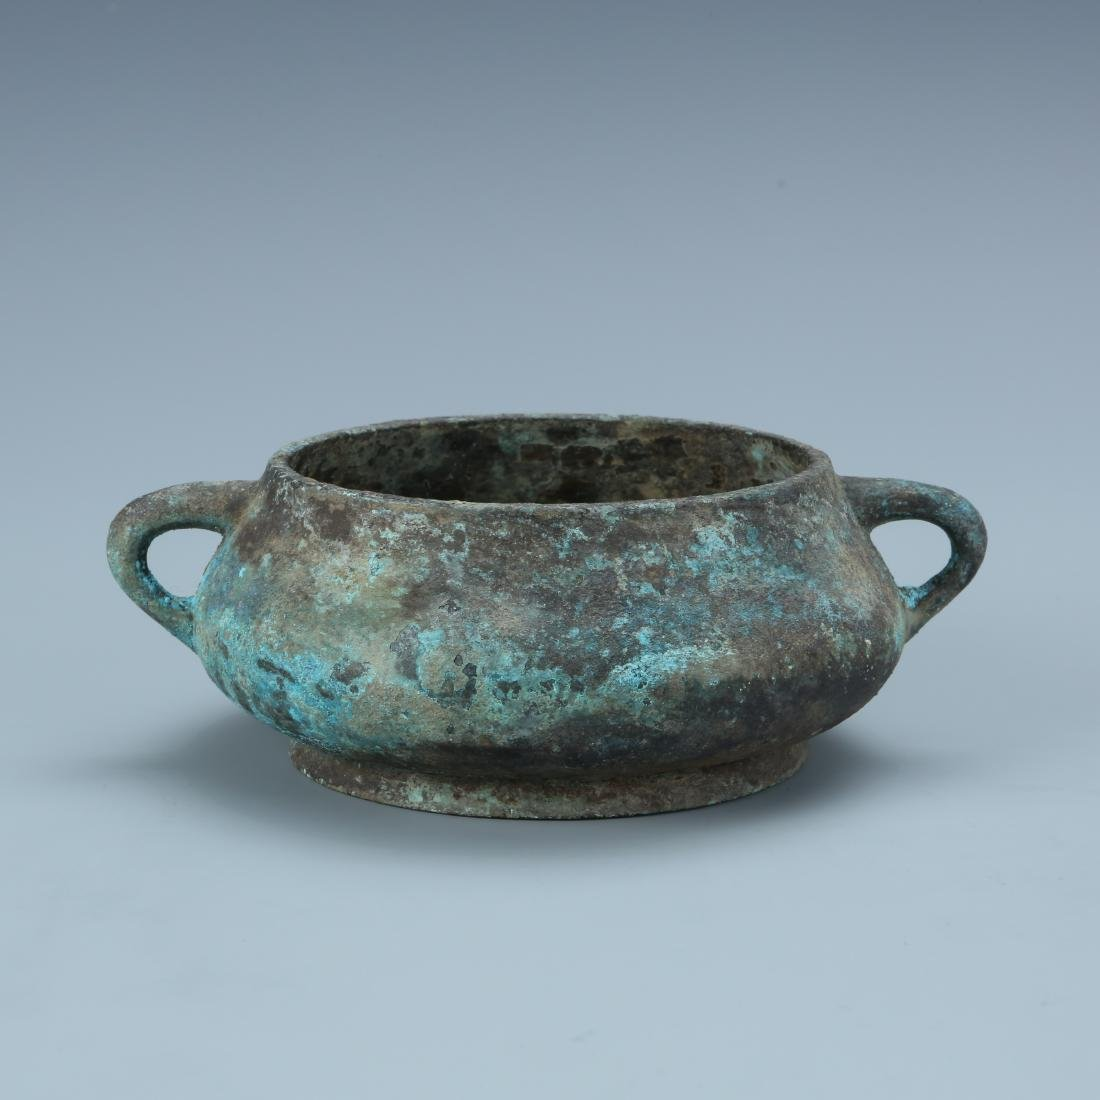 Patinated Bronze Censer with Mark